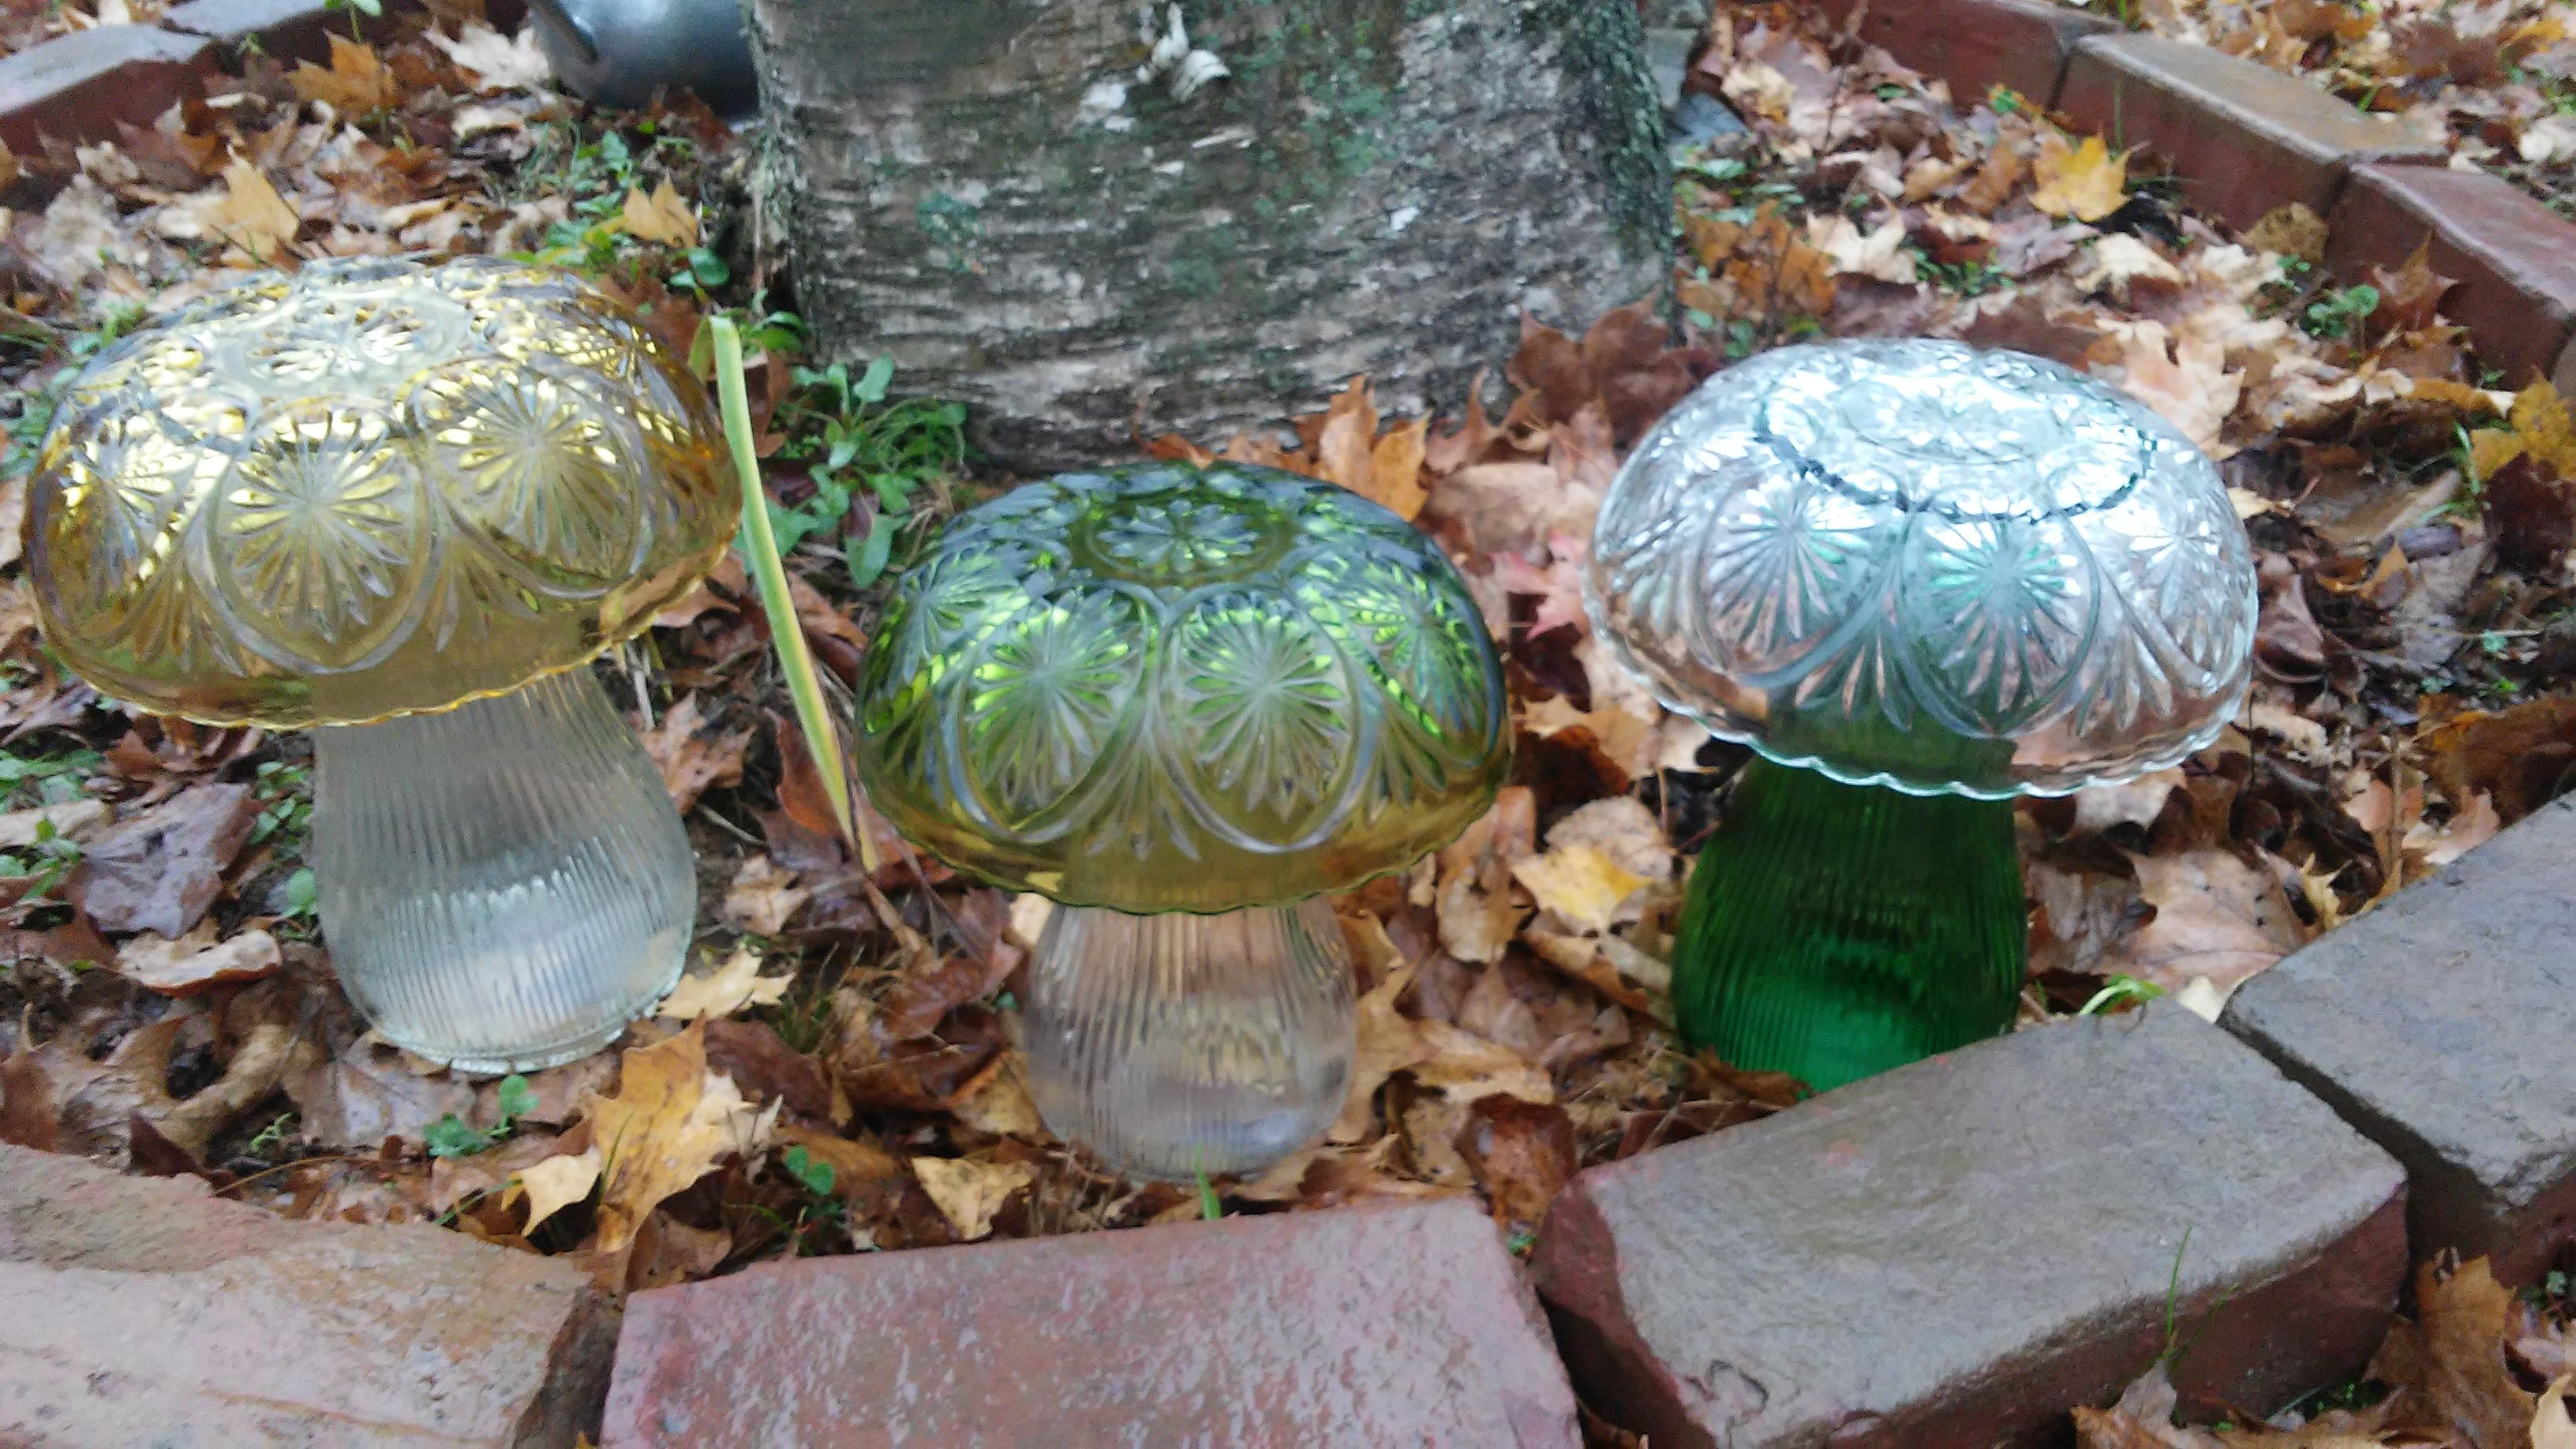 Repurposed Glass Mushroom Garden Decor Yard Art Glass Mushrooms Garden Decor